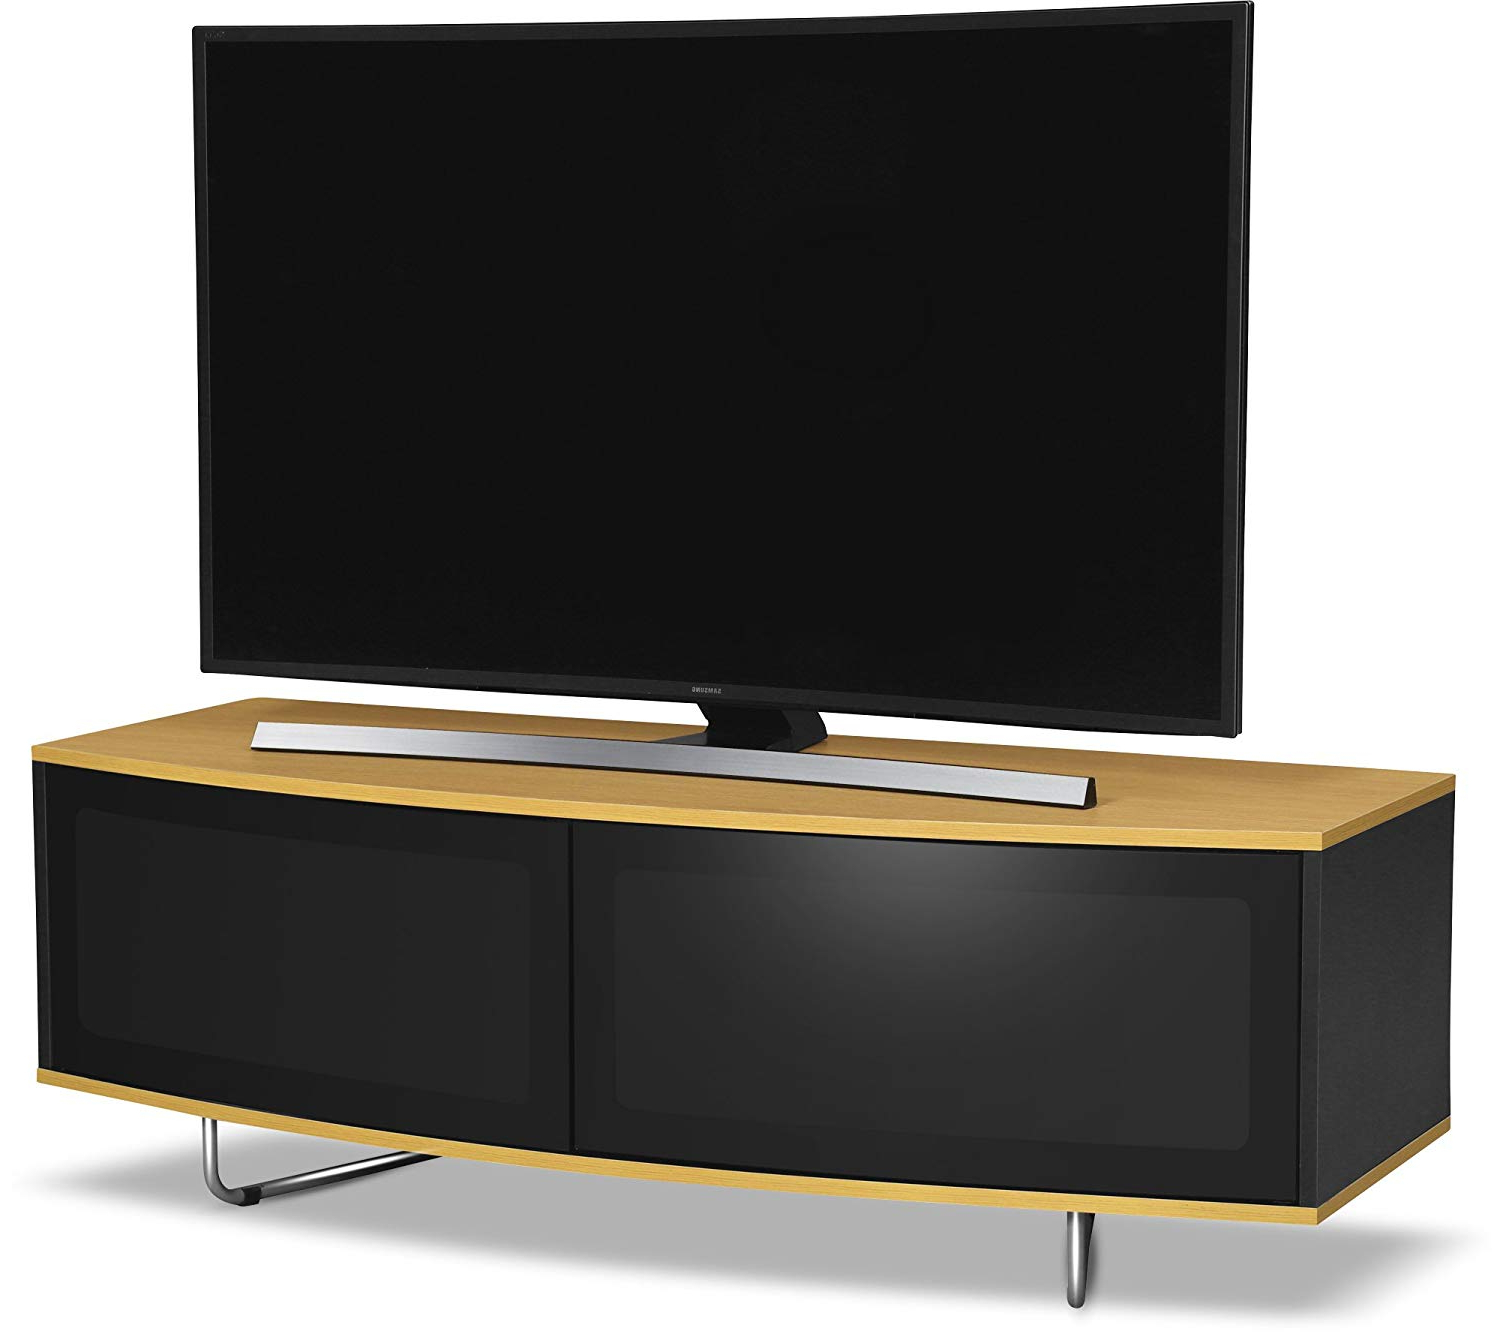 Contemporary Oak Tv Stands With Regard To Trendy Centurion Supports Caru Gloss Black And Gloss Oak: Amazon.co (View 6 of 20)